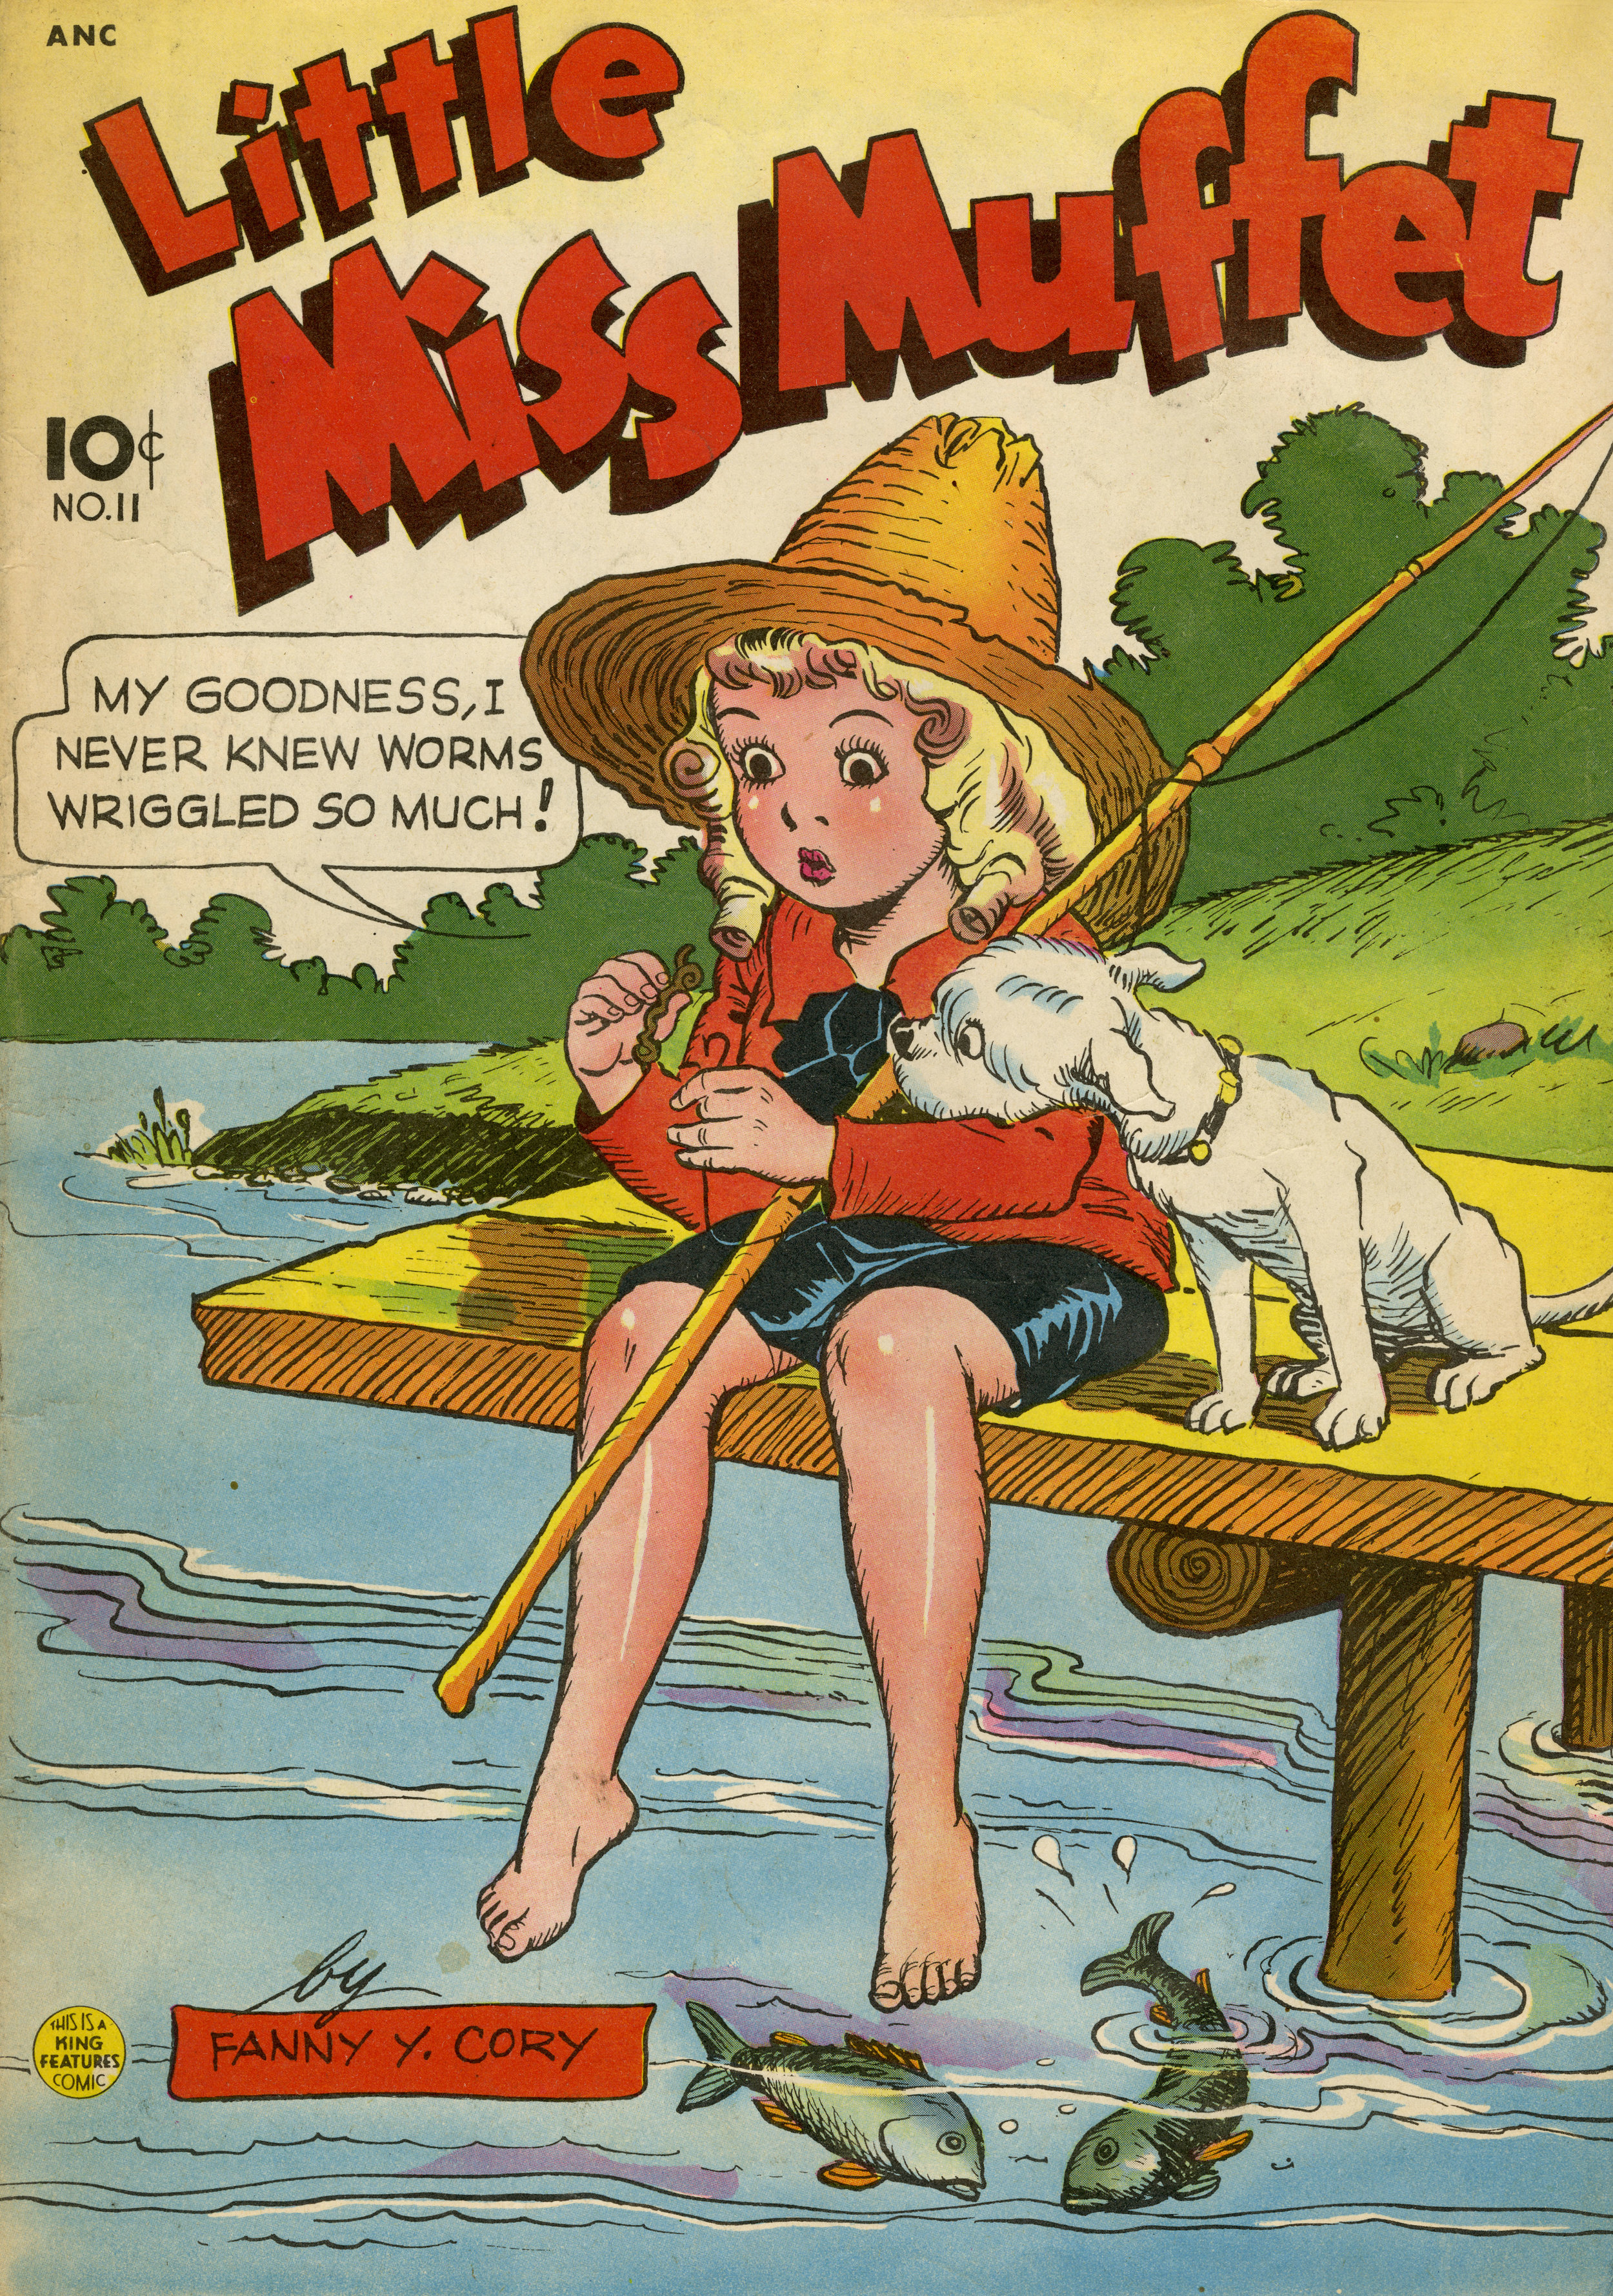 """Fanny Cory, """"Little Miss Muffet""""No. 11.Magazine published quarterly by Best Books, Inc. Copyright 1937, 1938, 1948 by King Features Syndicate, Inc. December 1948."""